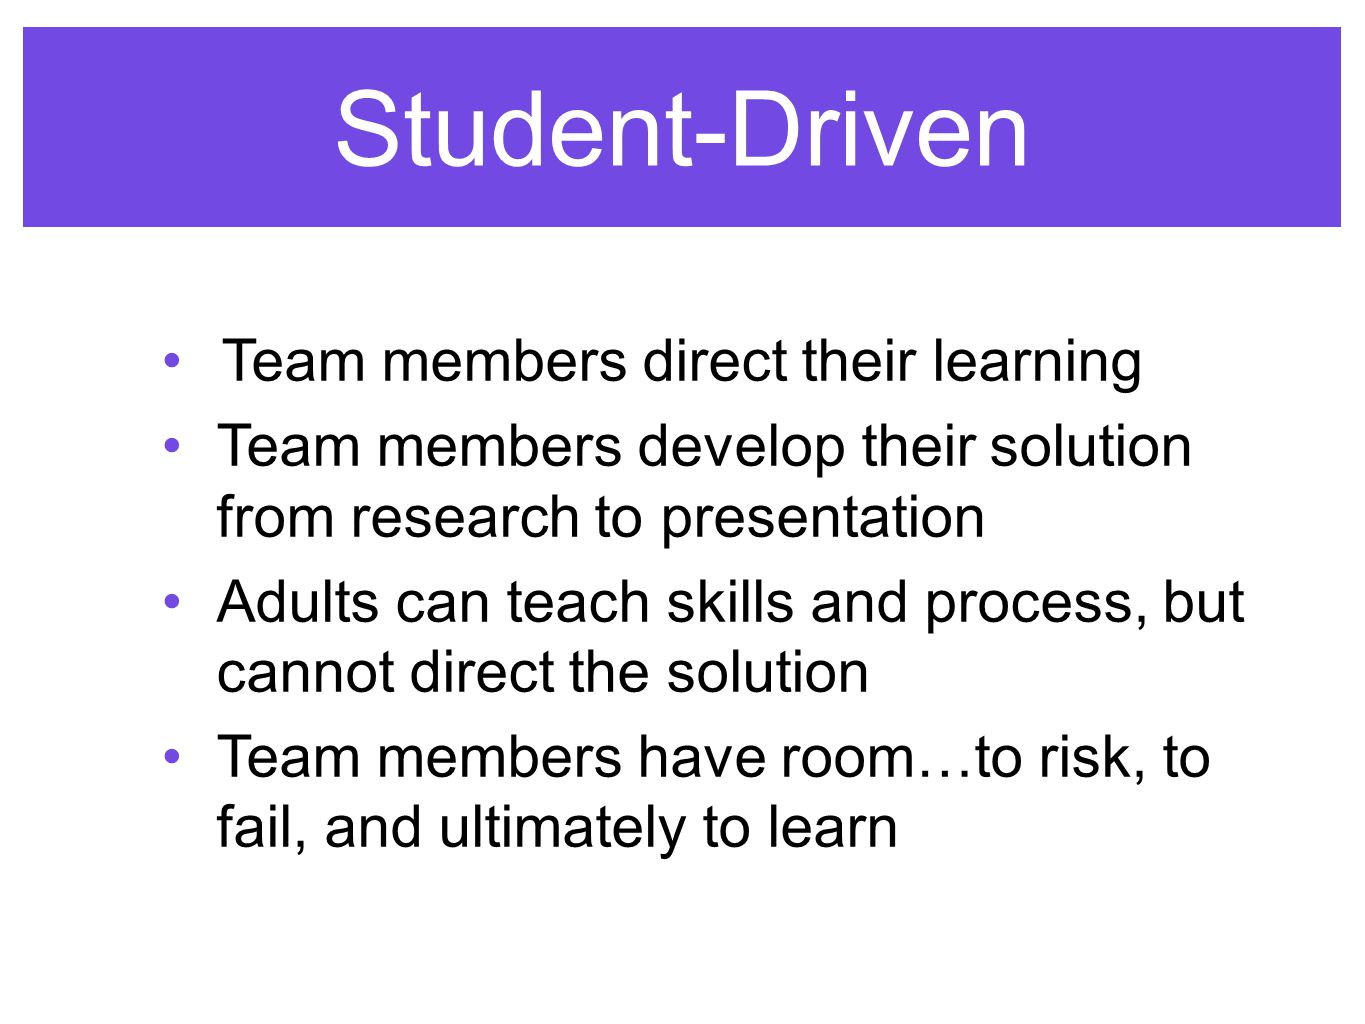 Student-Driven Team members direct their learning Team members develop their solution from research to presentation Adults can teach skills and process, but cannot direct the solution Team members have room…to risk, to fail, and ultimately to learn